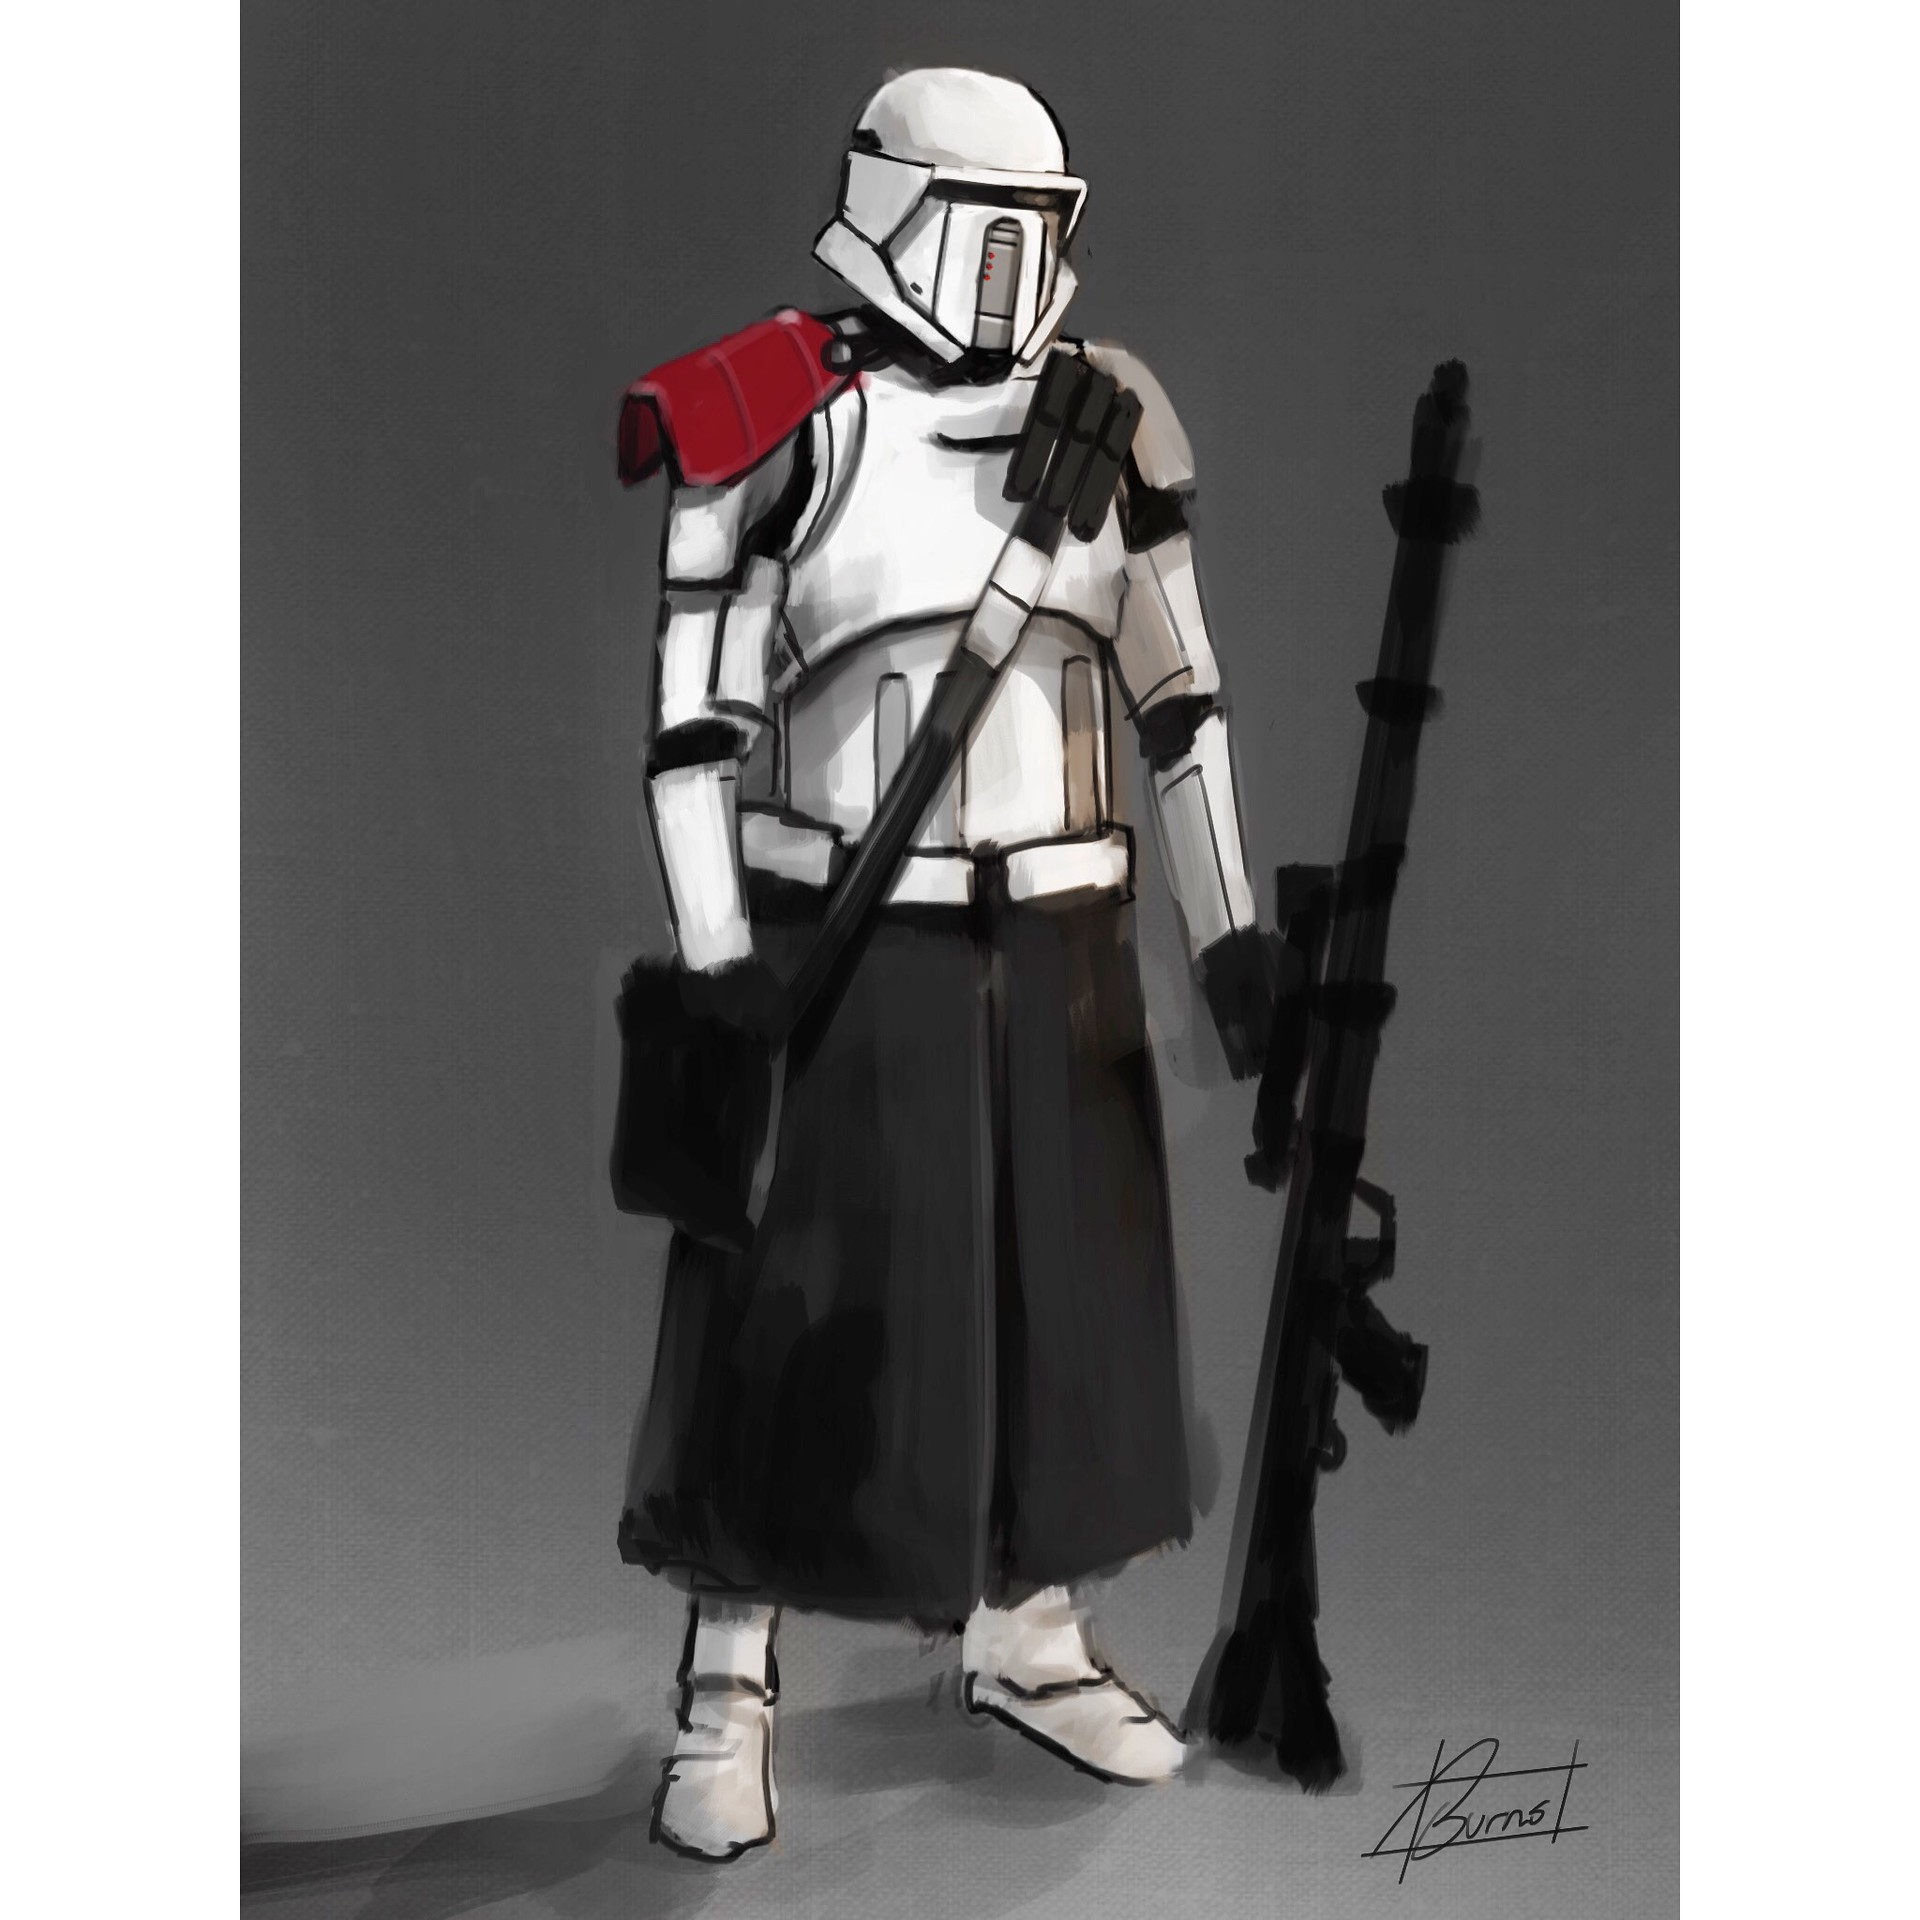 Special Operations Stormtrooper concept